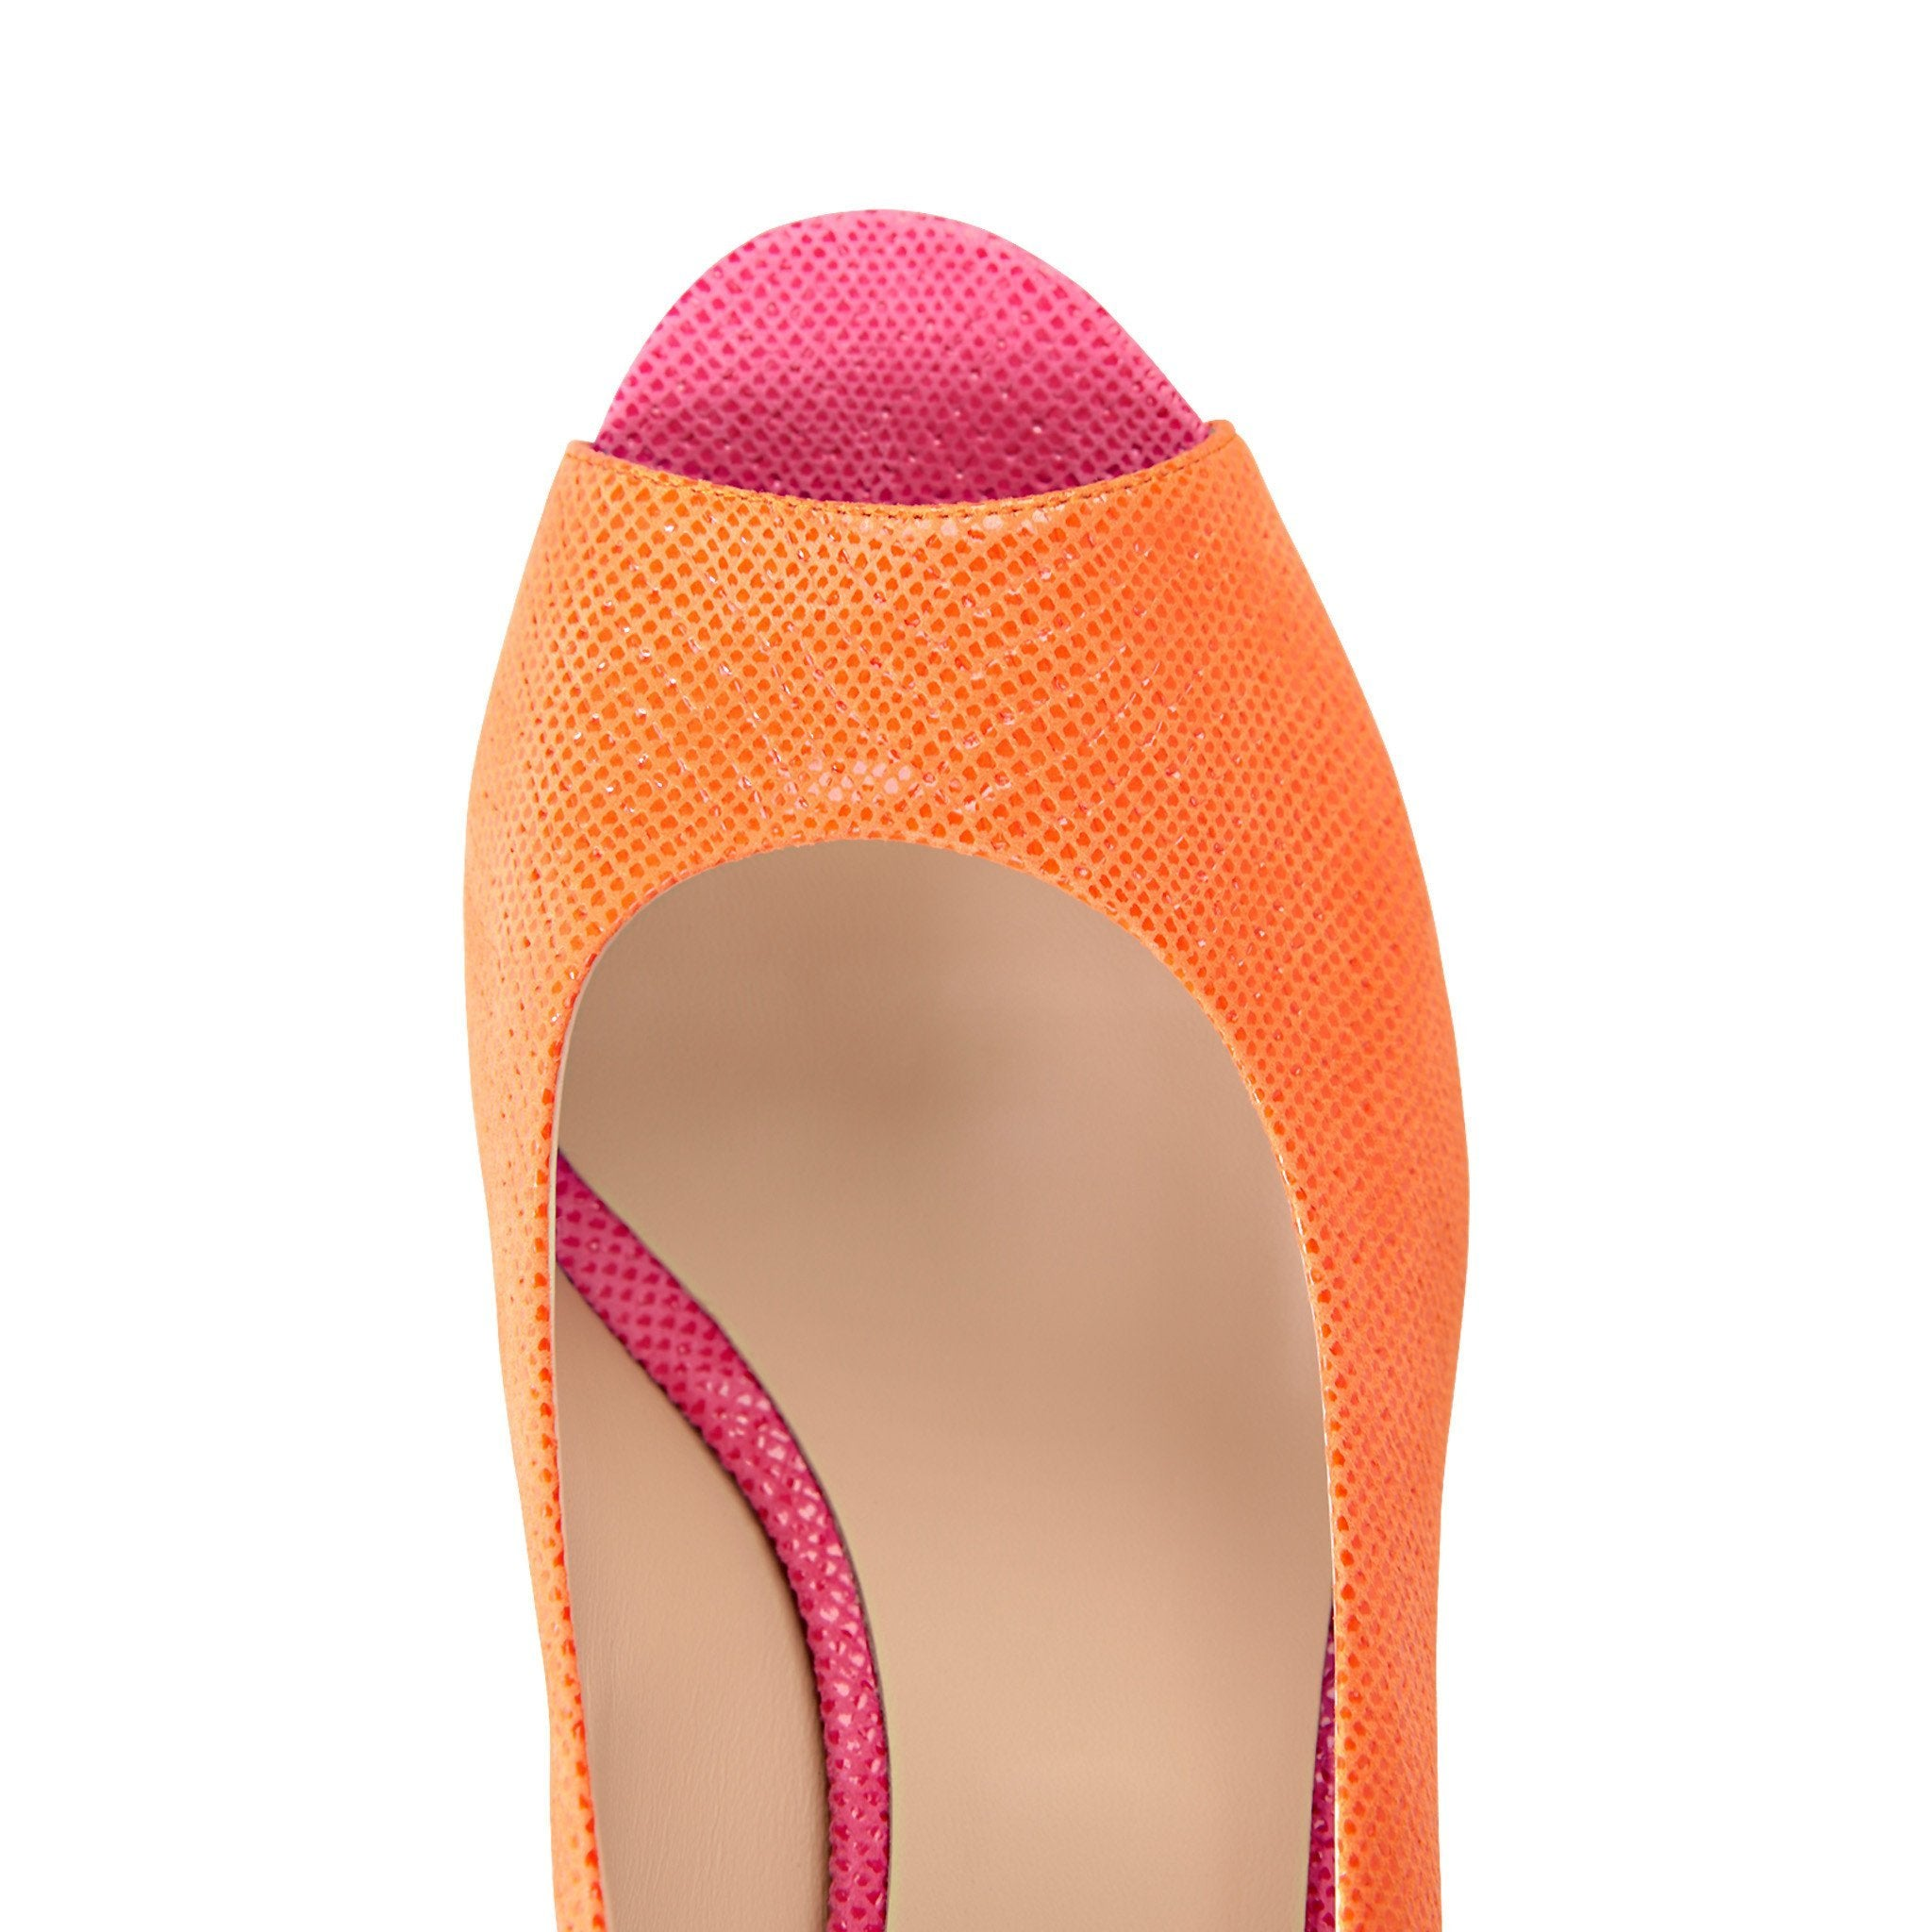 SARDINIA - Karung Mandarin + Epiphany Pink, VIAJIYU - Women's Hand Made Sustainable Luxury Shoes. Made in Italy. Made to Order.